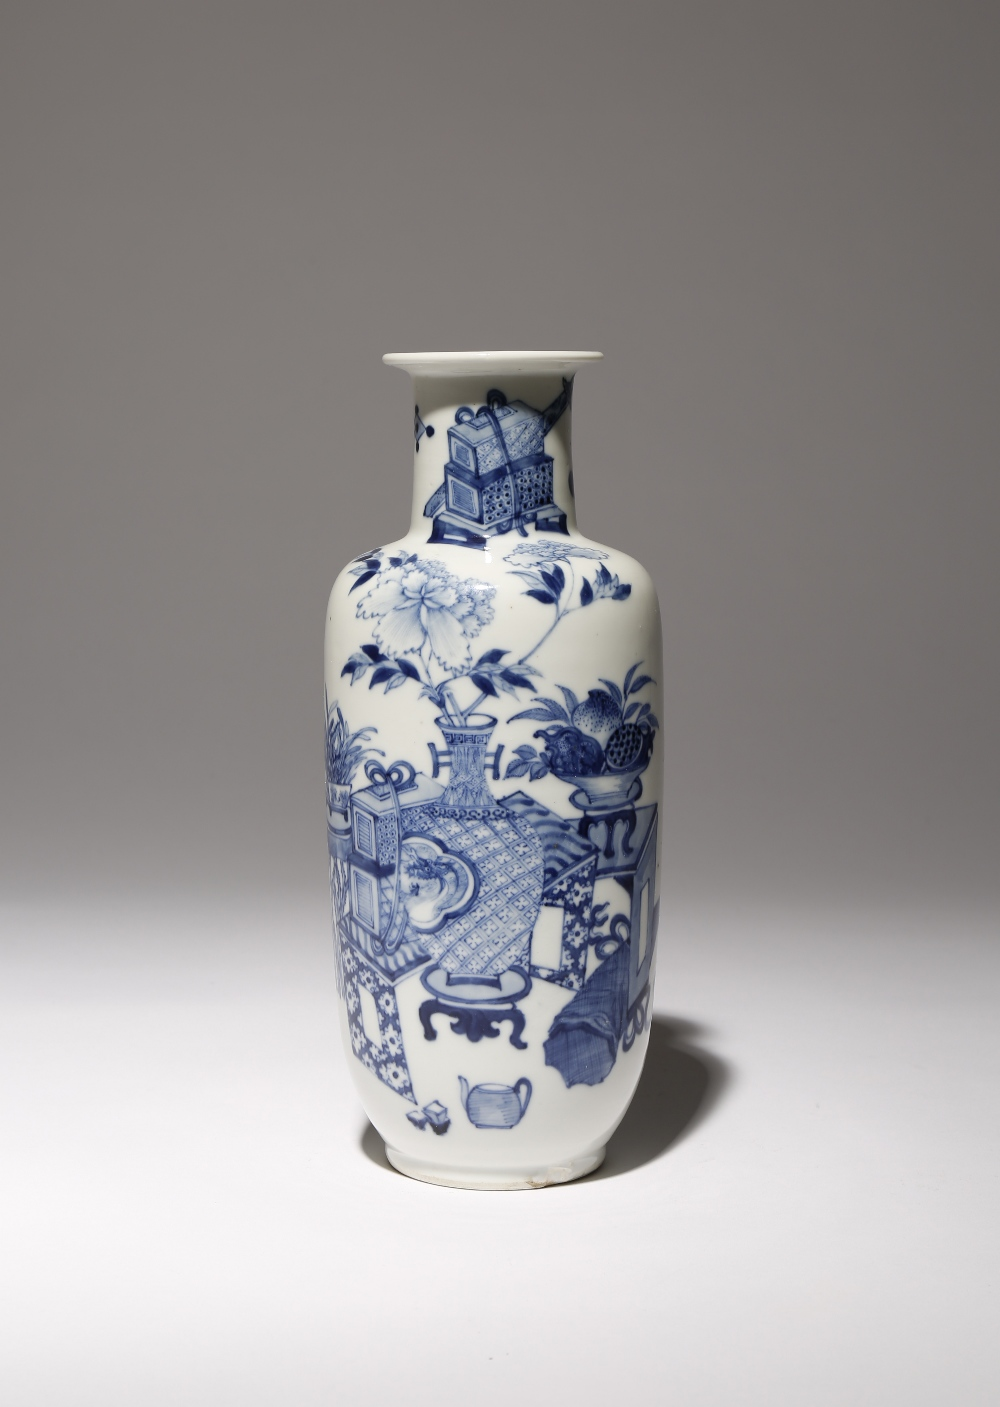 A CHINESE BLUE AND WHITE 'HUNDRED ANTIQUES' ROULEAU VASE 19TH CENTURY The tall cylindrical body